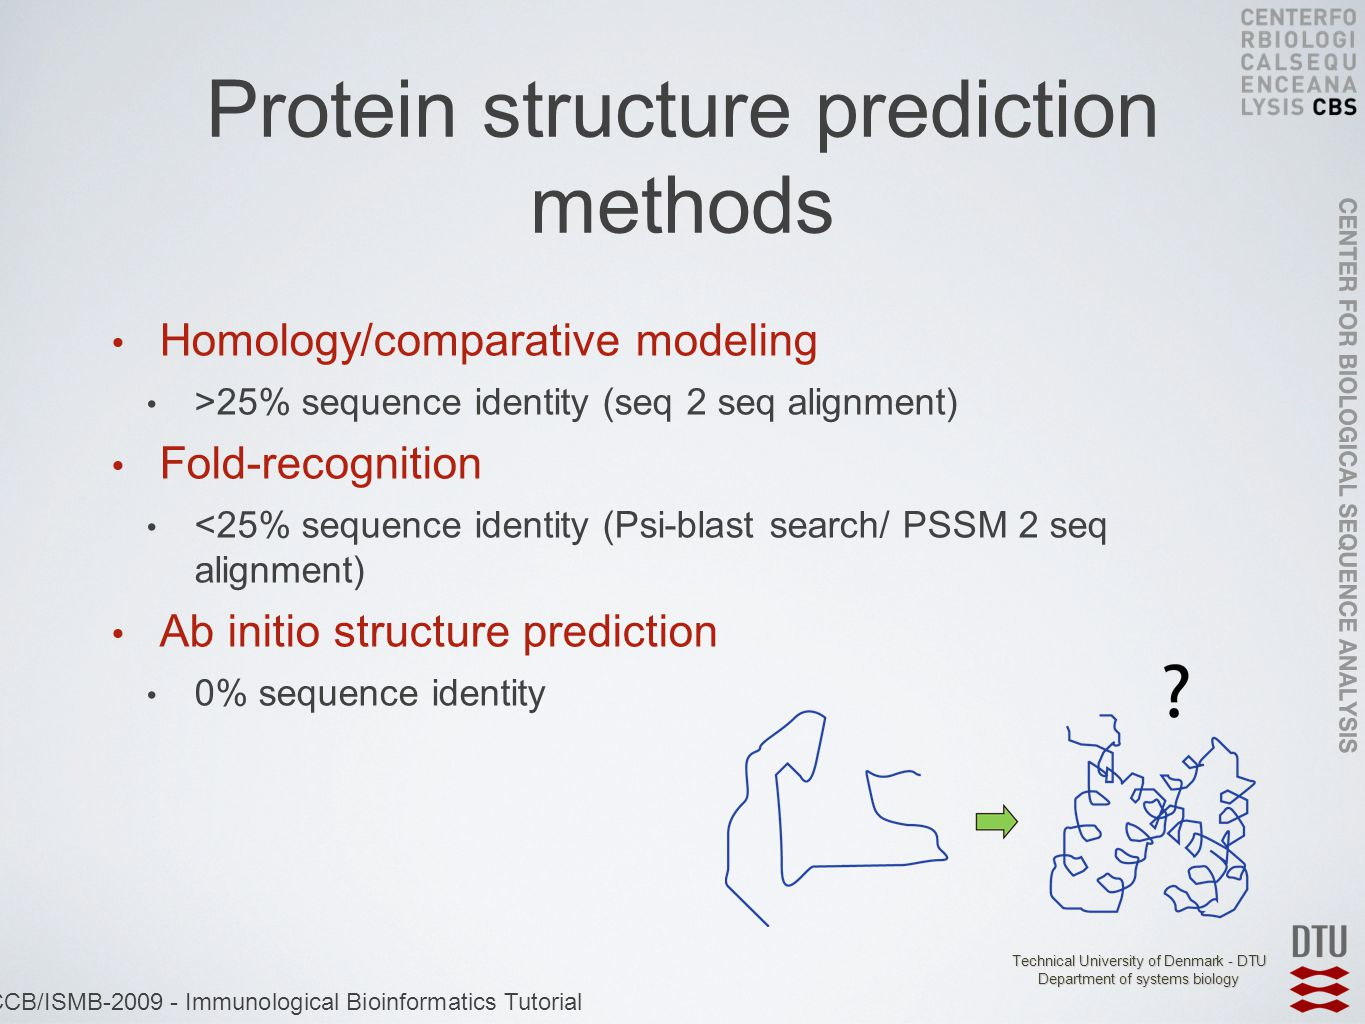 Technical University of Denmark - DTU Department of systems biology ECCB/ISMB-2009 - Immunological Bioinformatics Tutorial Protein structure prediction methods Homology/comparative modeling >25% sequence identity (seq 2 seq alignment) Fold-recognition <25% sequence identity (Psi-blast search/ PSSM 2 seq alignment) Ab initio structure prediction 0% sequence identity